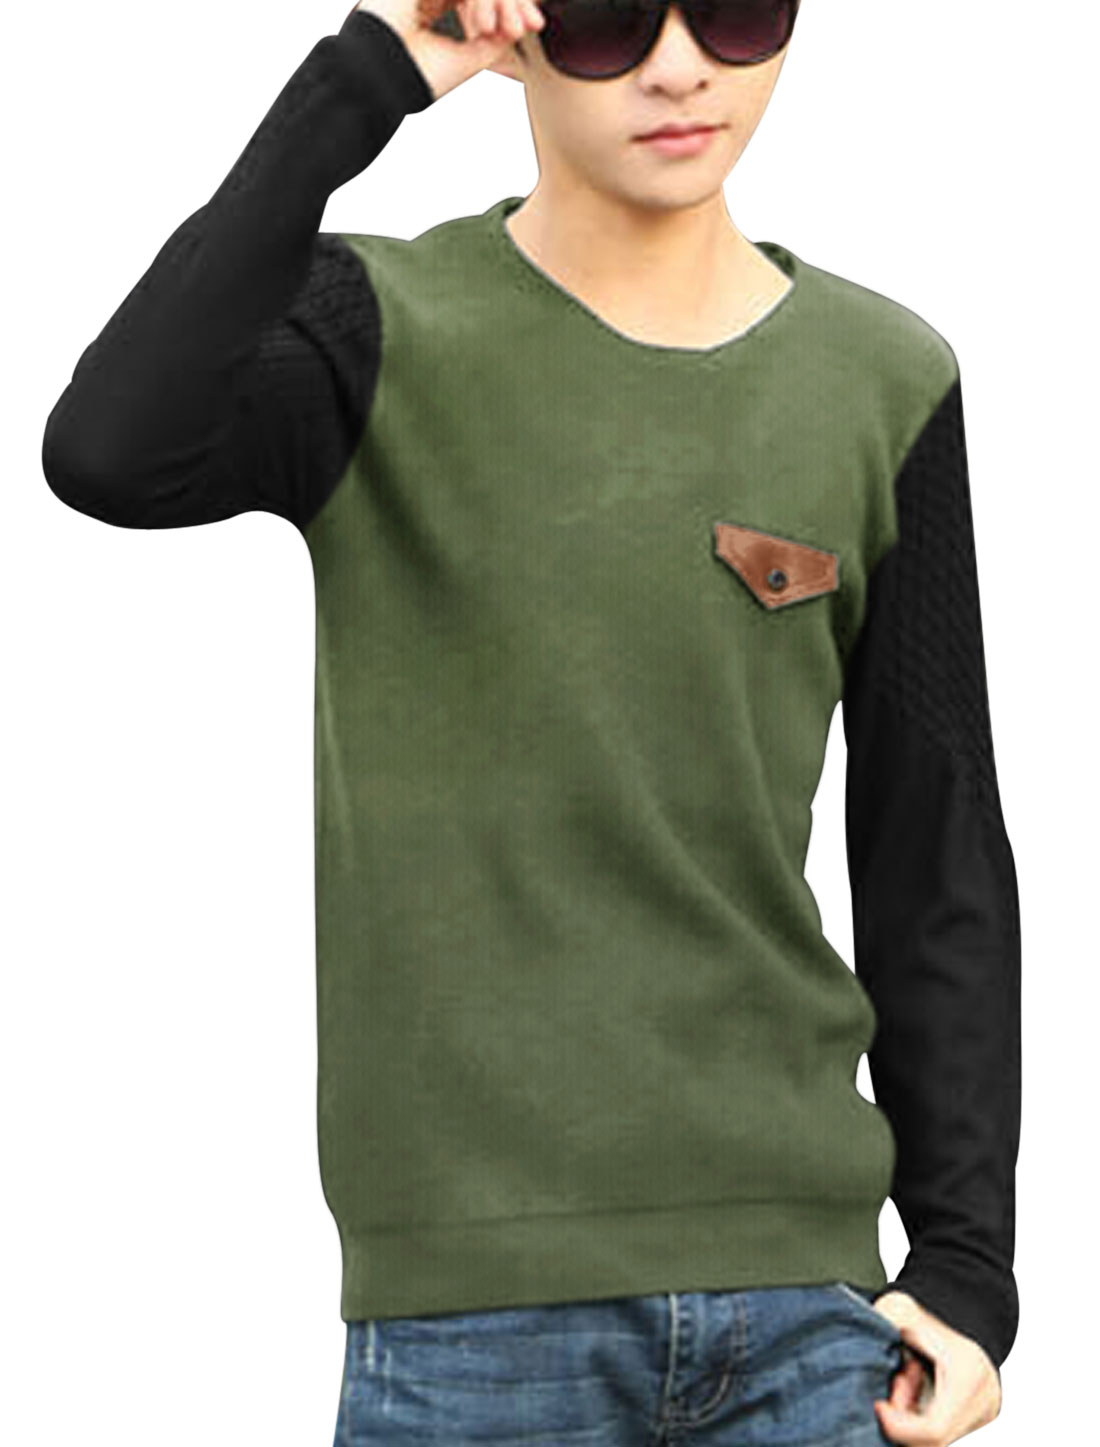 Men Contrast Color Button Decor Chest Pocket Knit Shirt Light Green S